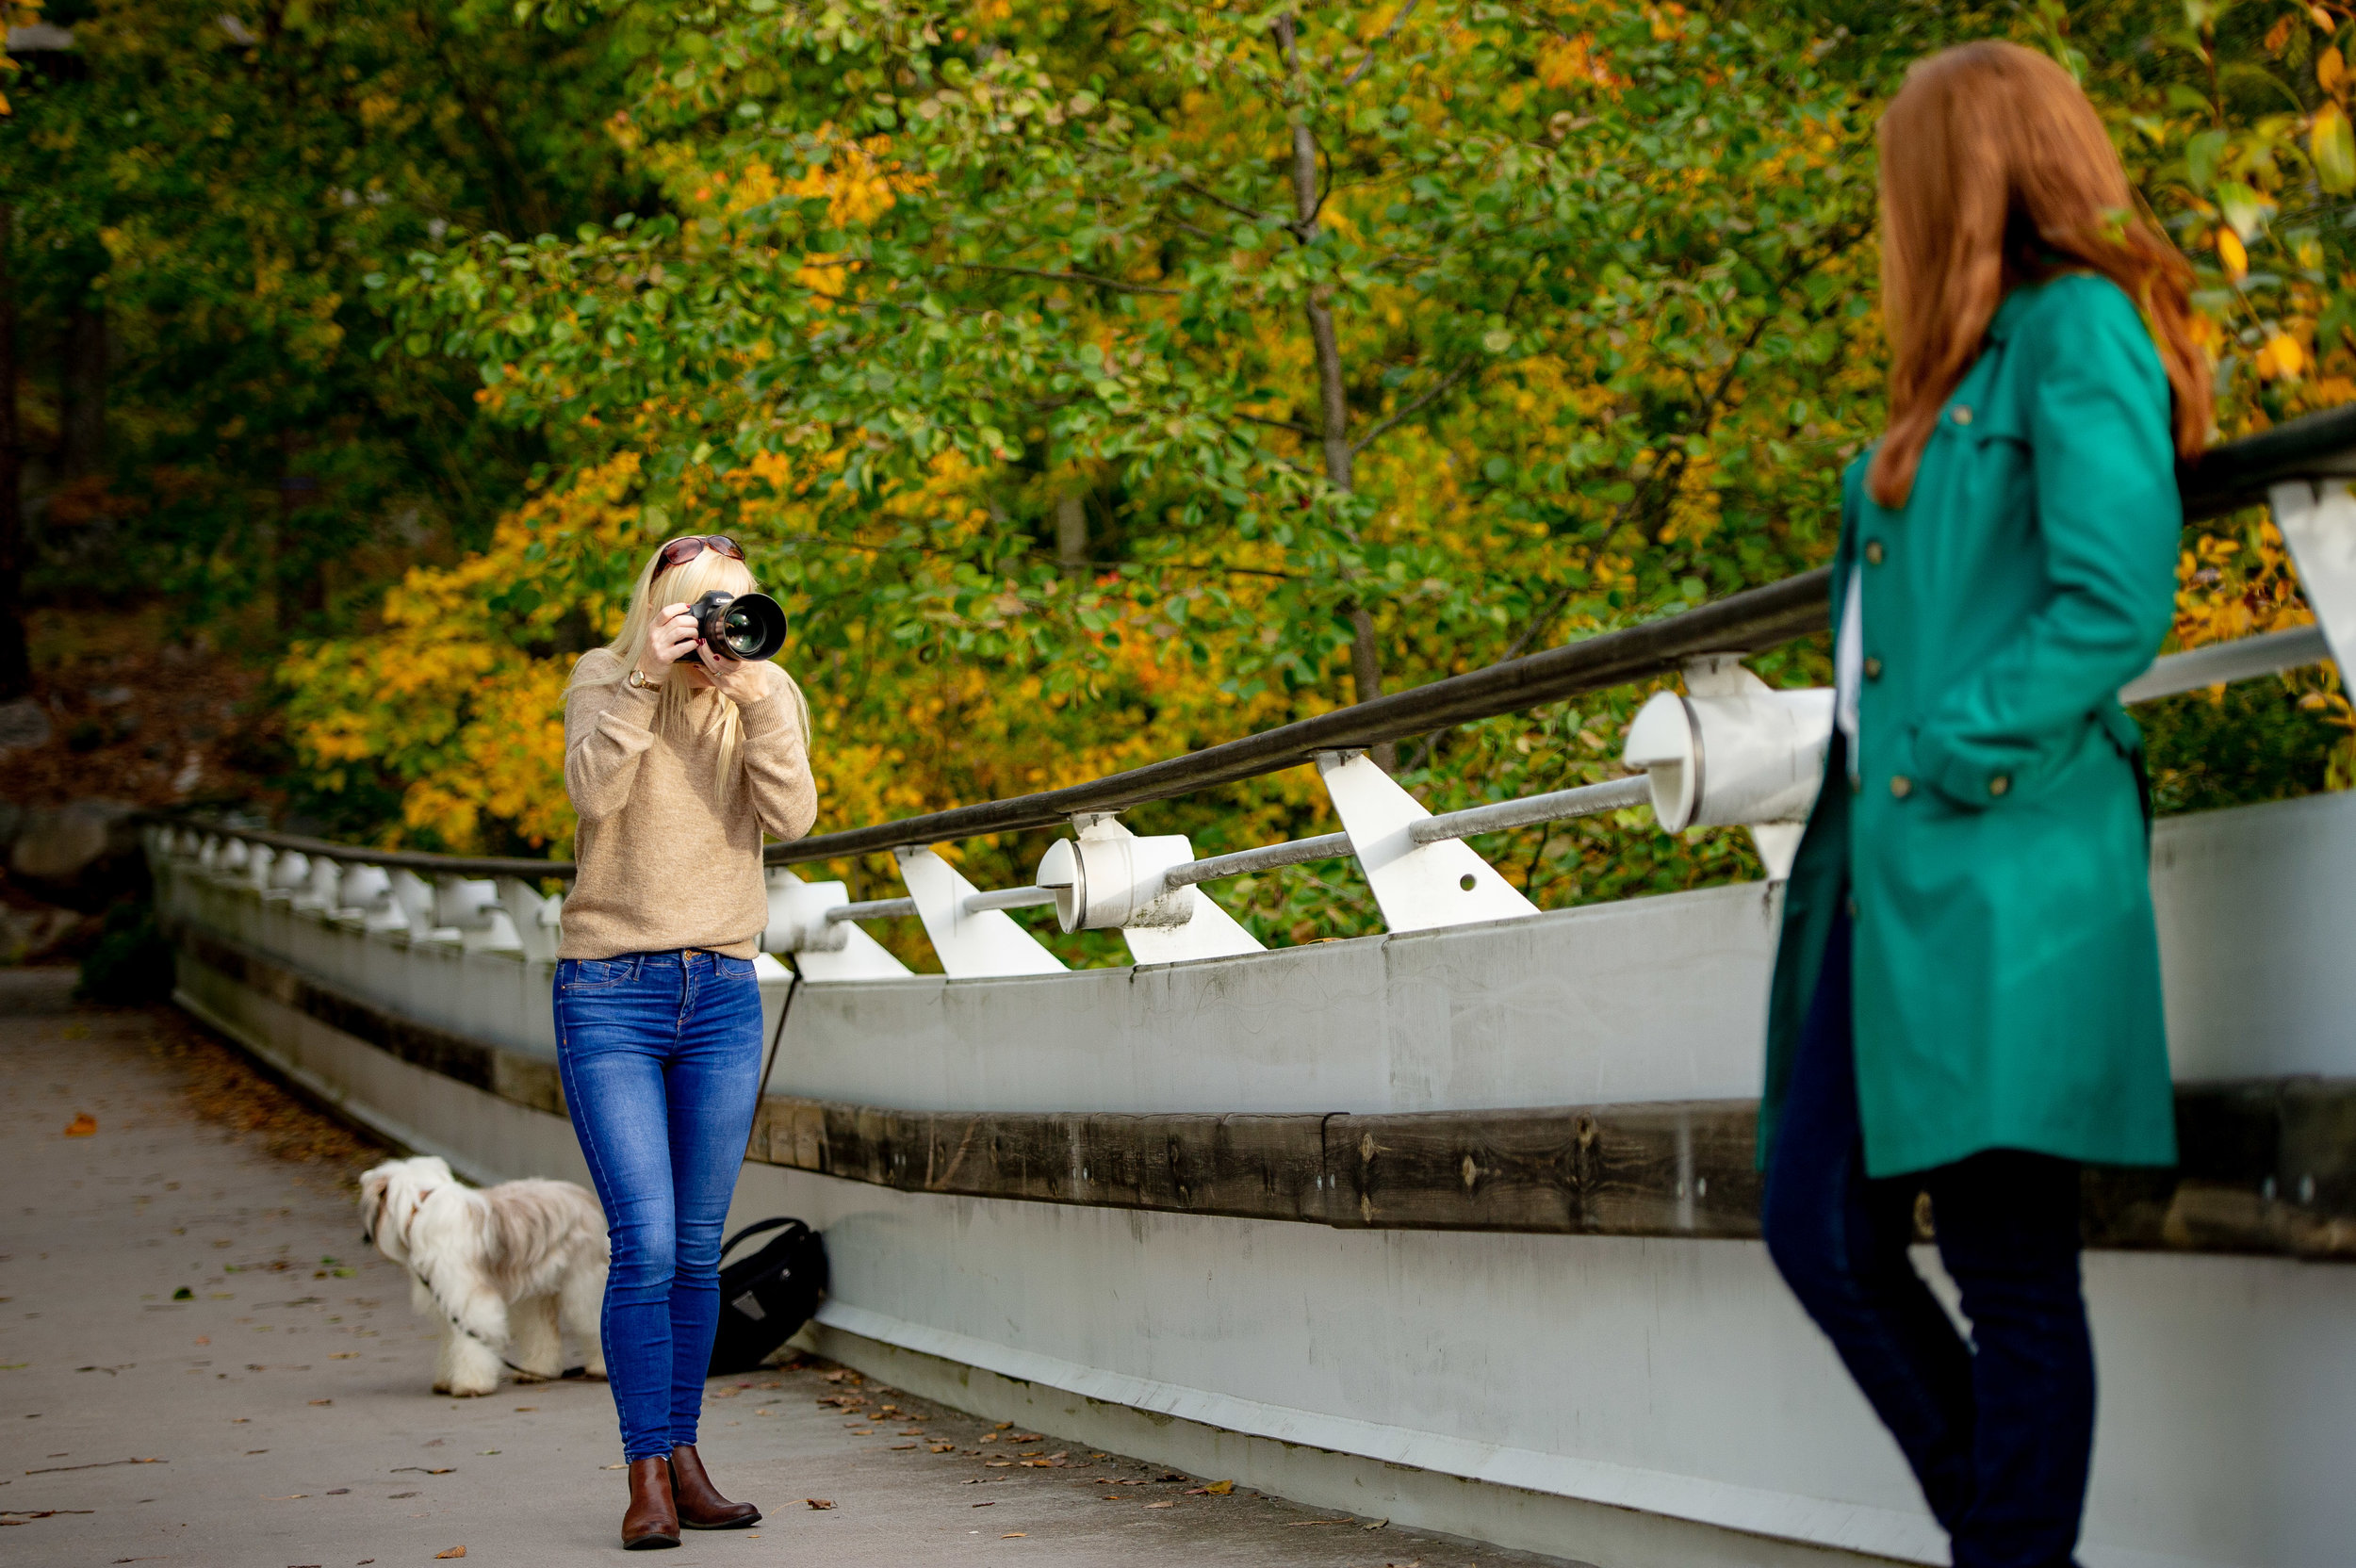 - Here I am photographing my beautiful model, Kylie. This time I had security with me guarding my camera bag - see Tibetan Terrier keeping watch behind me. You can never be too careful.